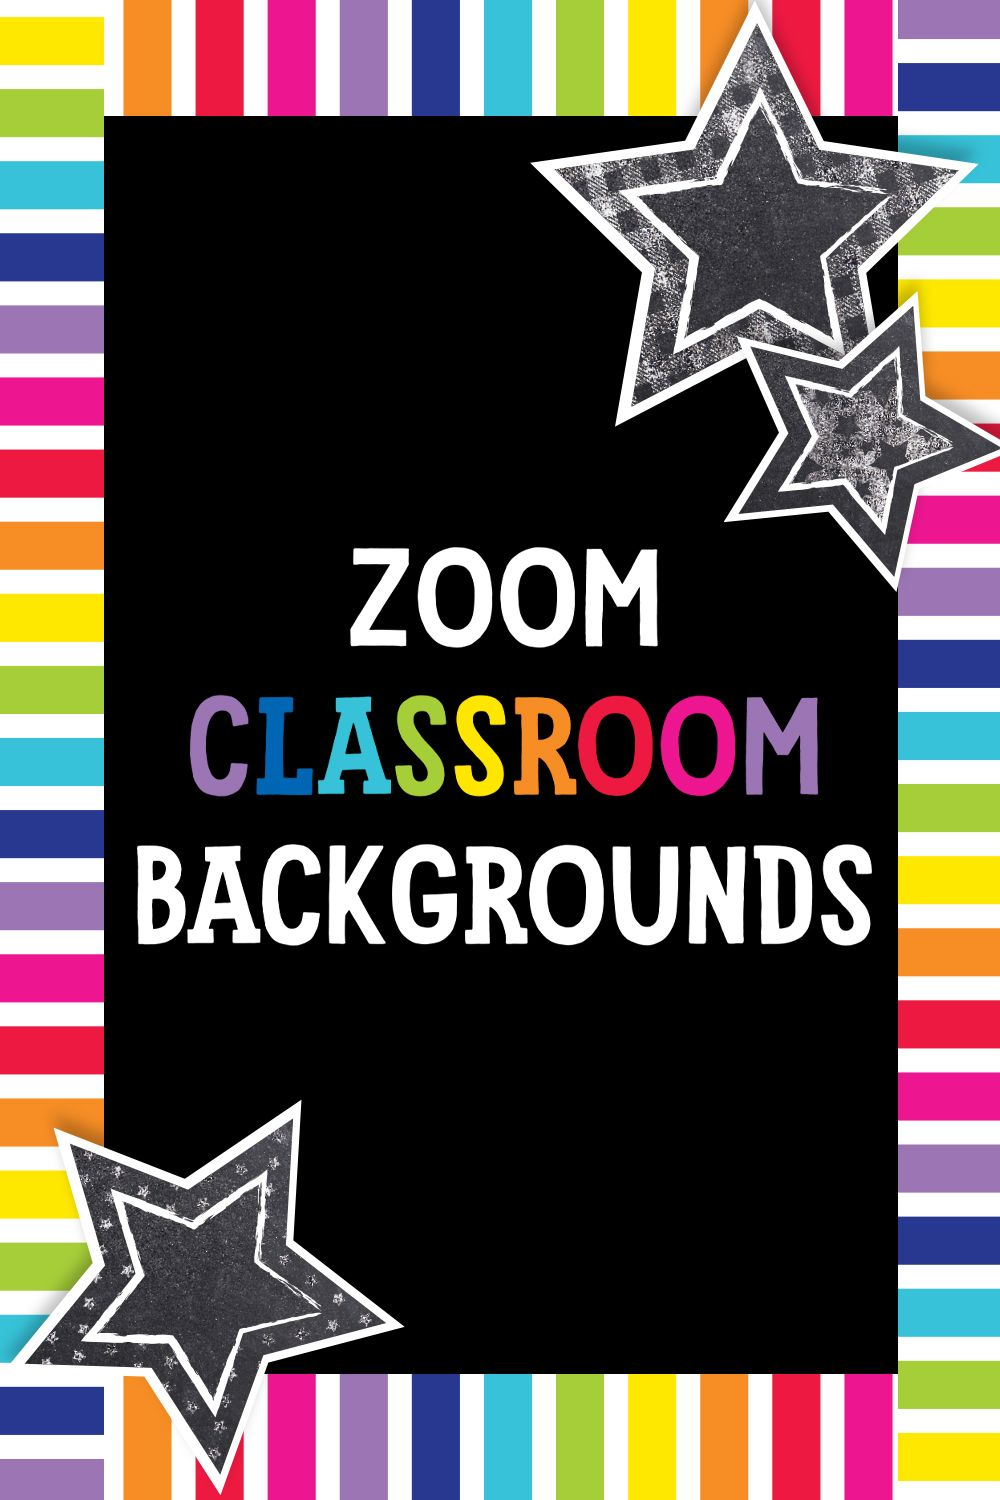 Pin on Zoom Backgrounds for Teachers